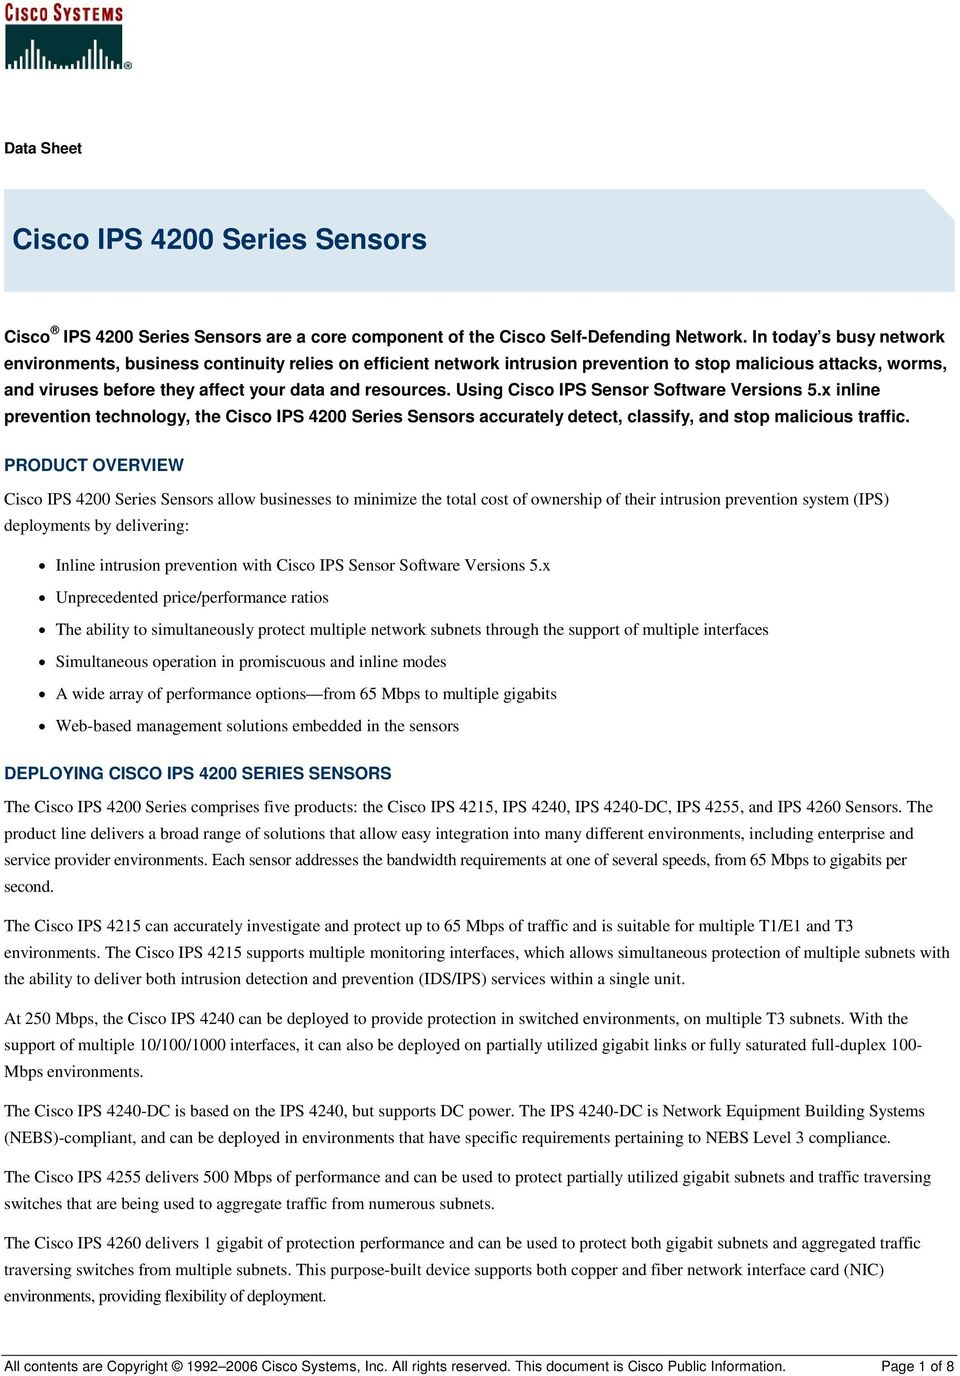 Using Cisco IPS Sensor Software Versions 5.x inline prevention technology, the Cisco IPS 4200 Series Sensors accurately detect, classify, and stop malicious traffic.